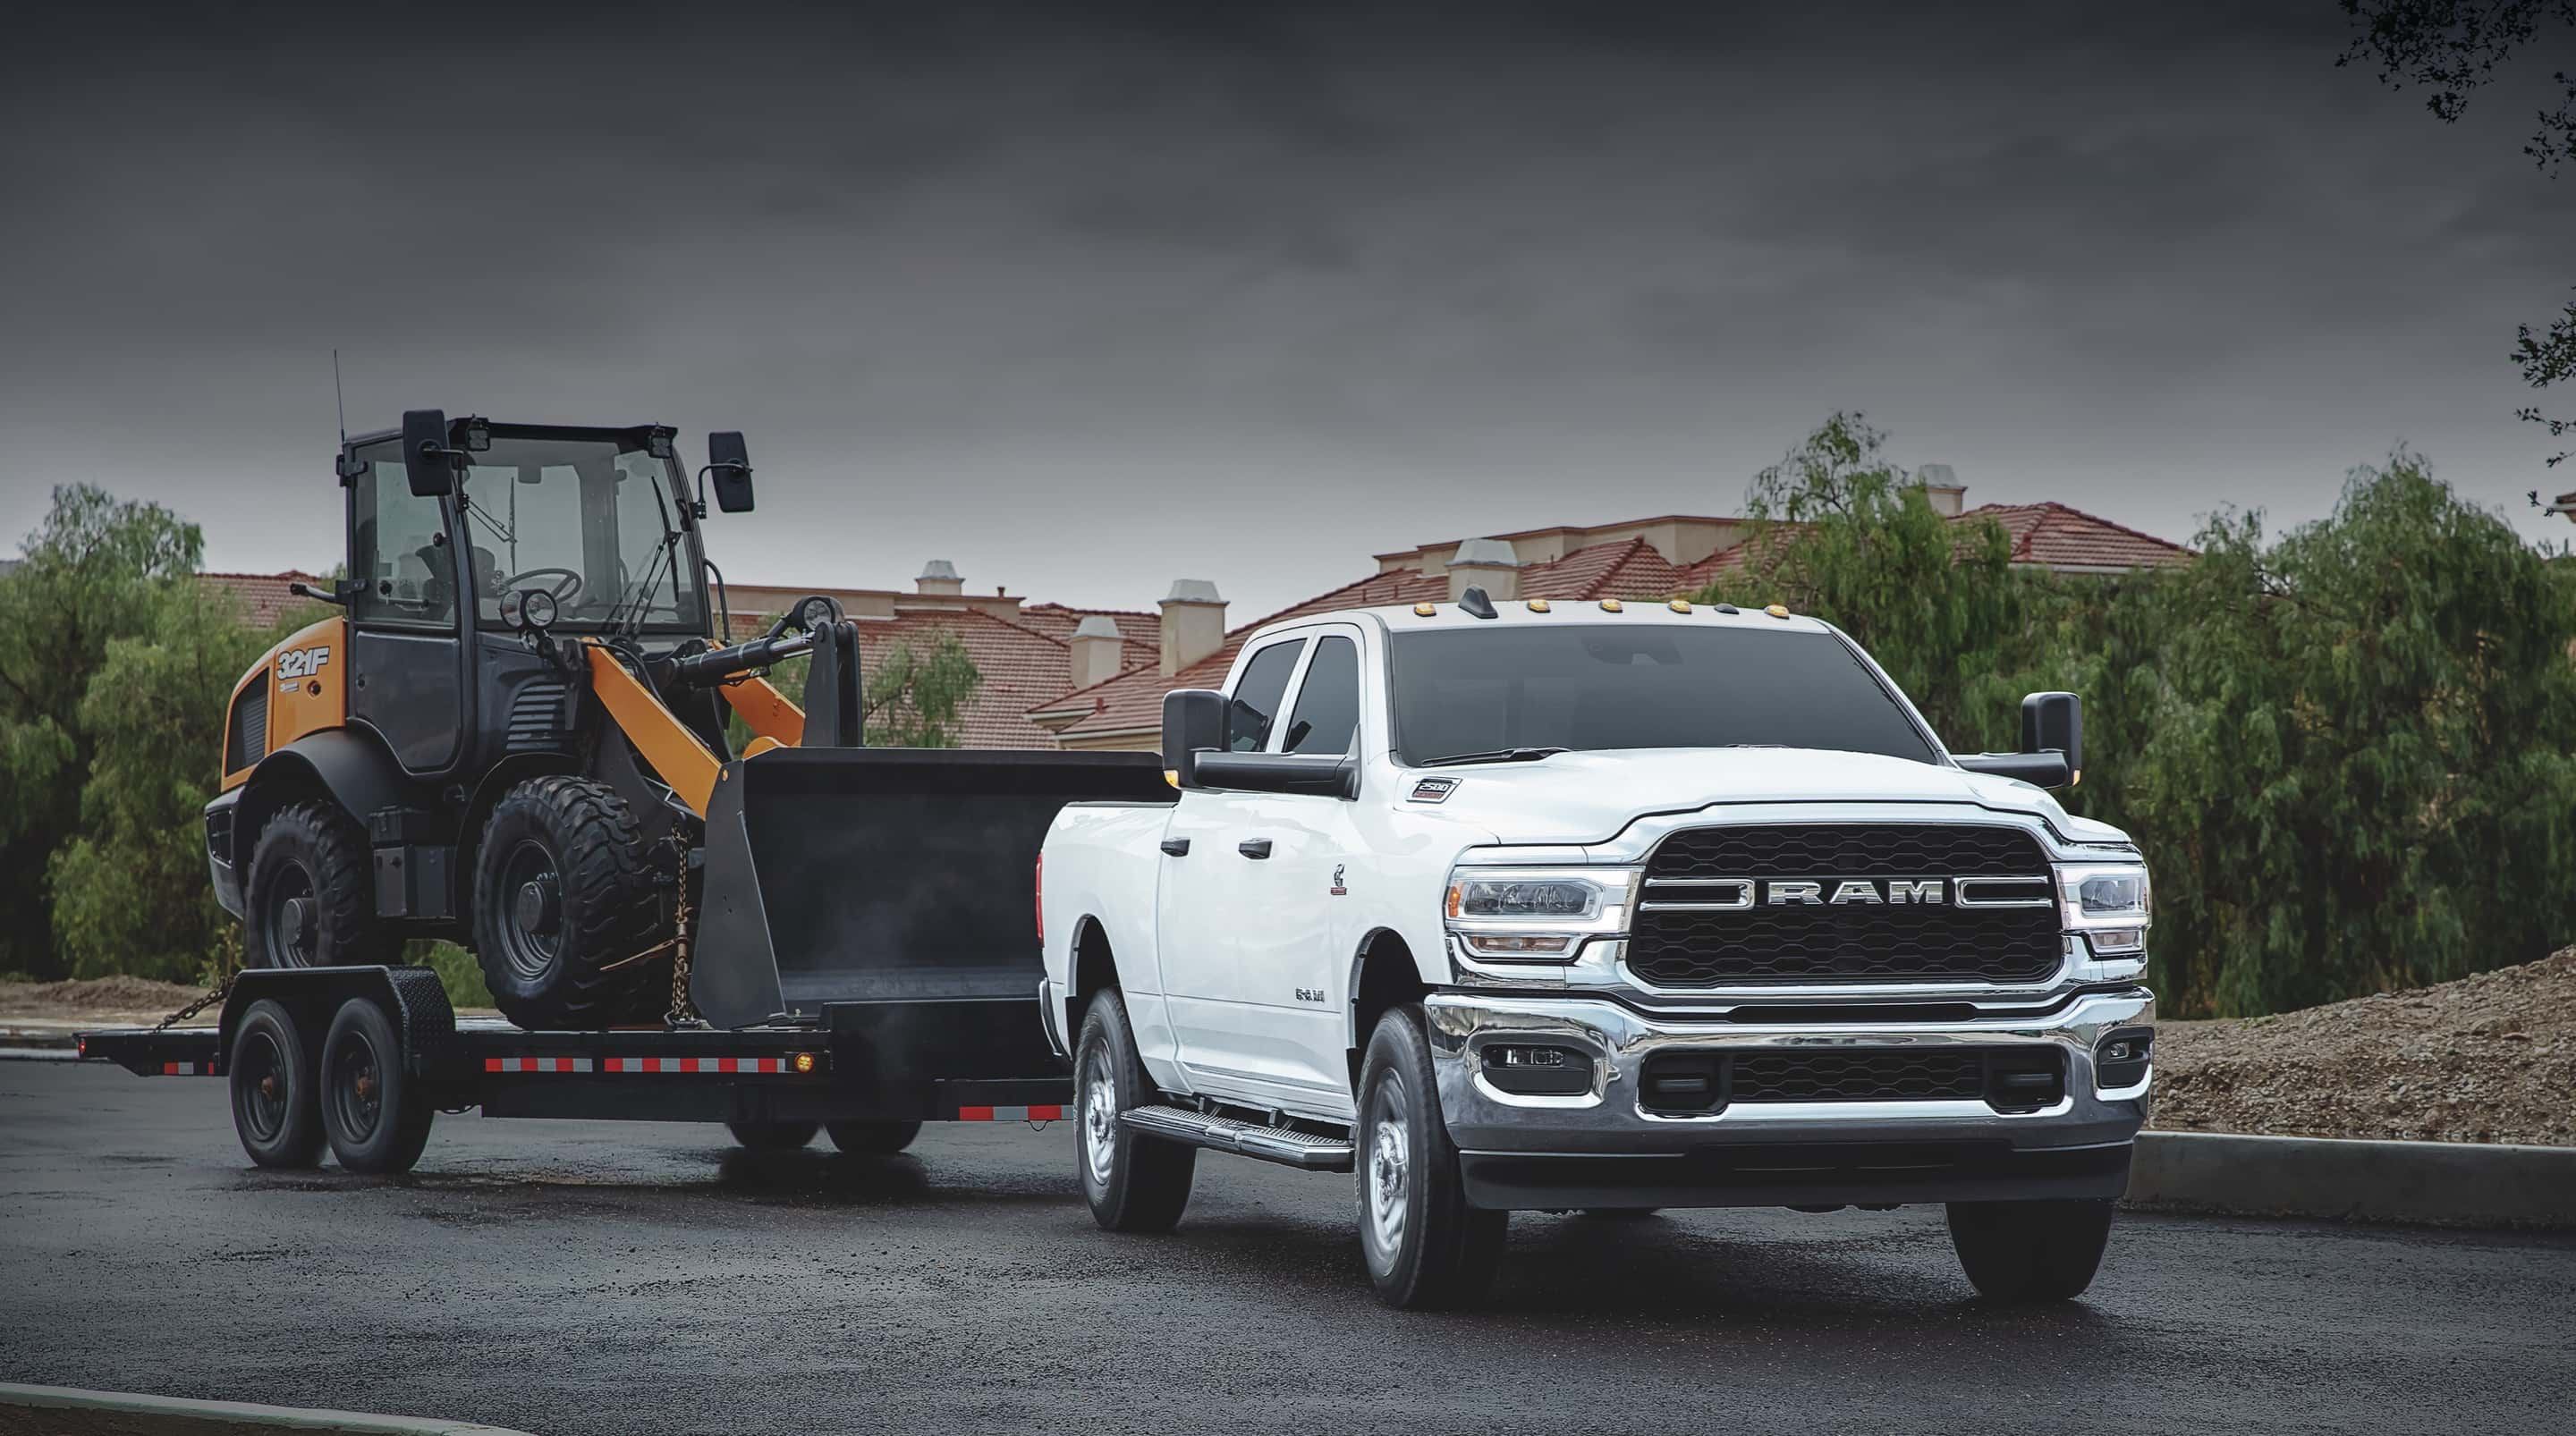 The 2020 Ram 2500 towing a flatbed trailer with a front loader on it.